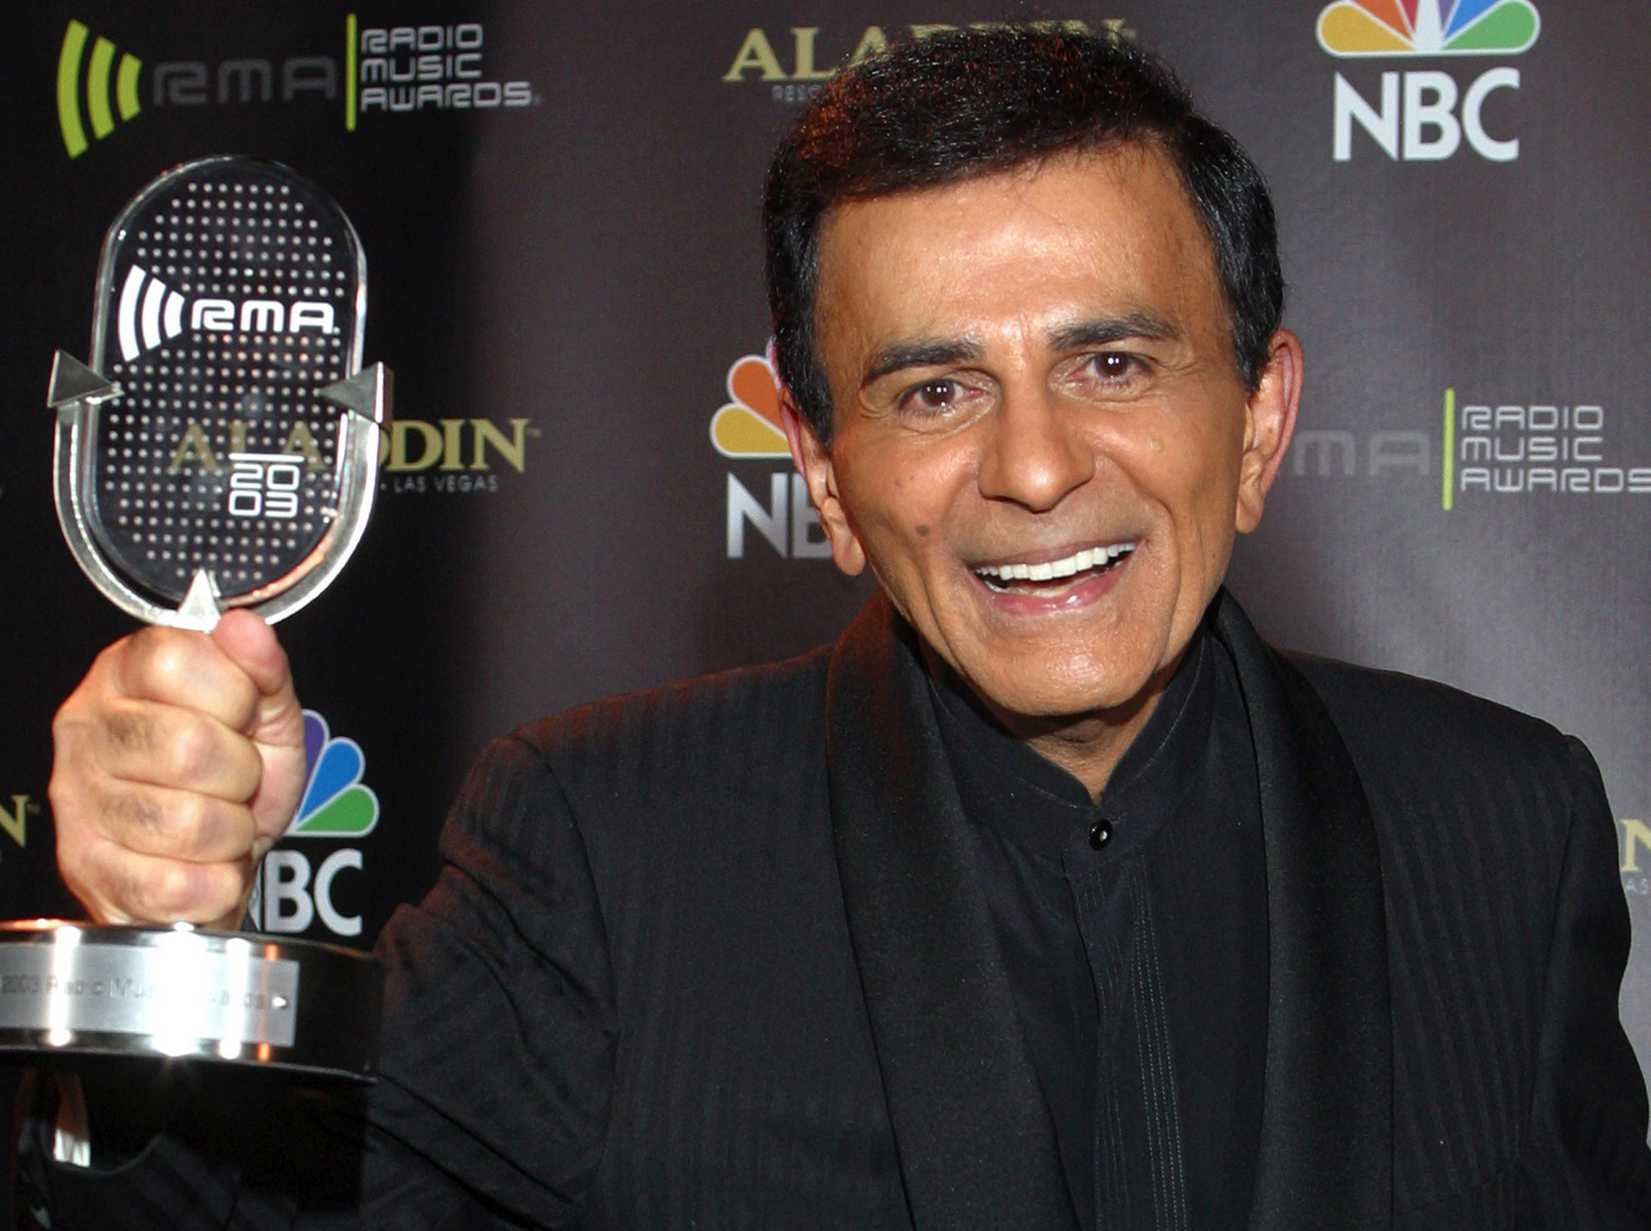 In this Oct. 27, 2003, file photo, Casey Kasem poses for photographers after receiving the Radio Icon award during the 2003 Radio Music Awards in Las Vegas